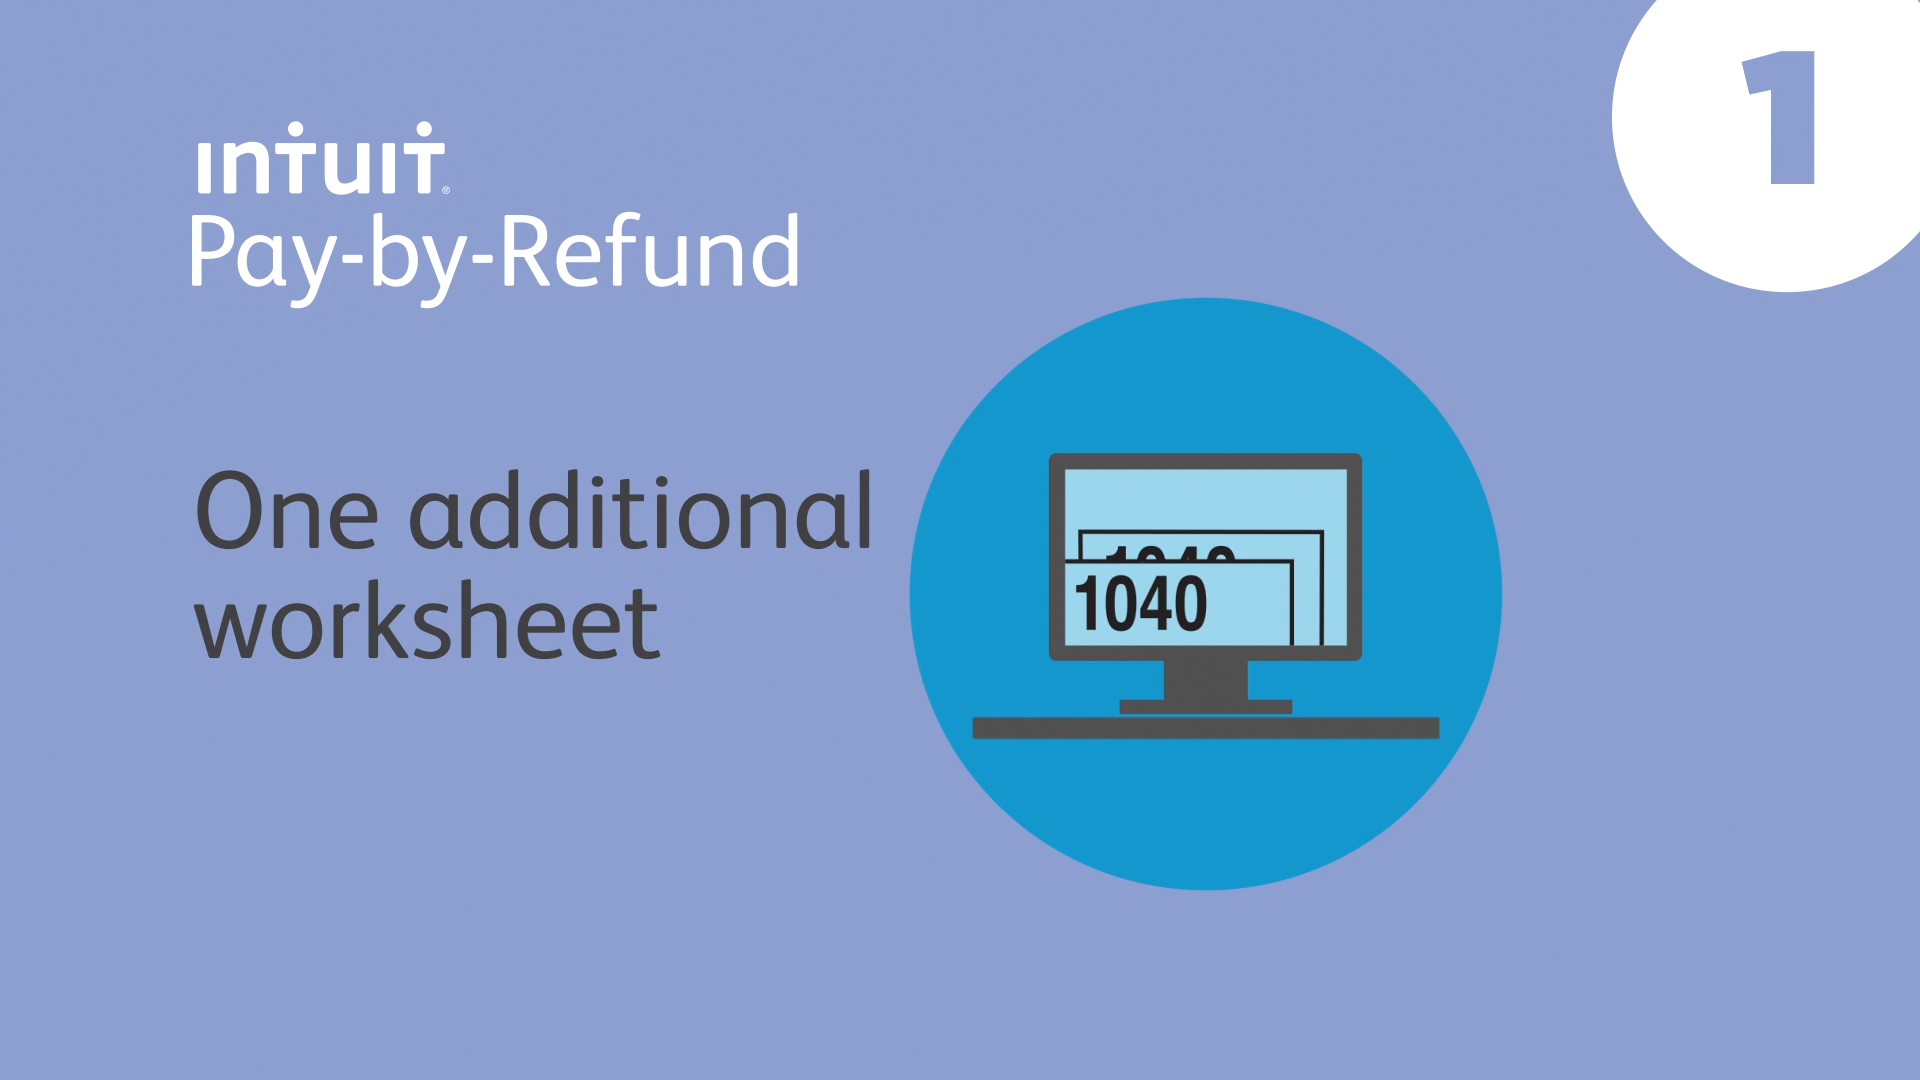 Intuit Pay-by-Refund - final ProRes for download.mp4 Comp 1 (0;00;34;20).jpg